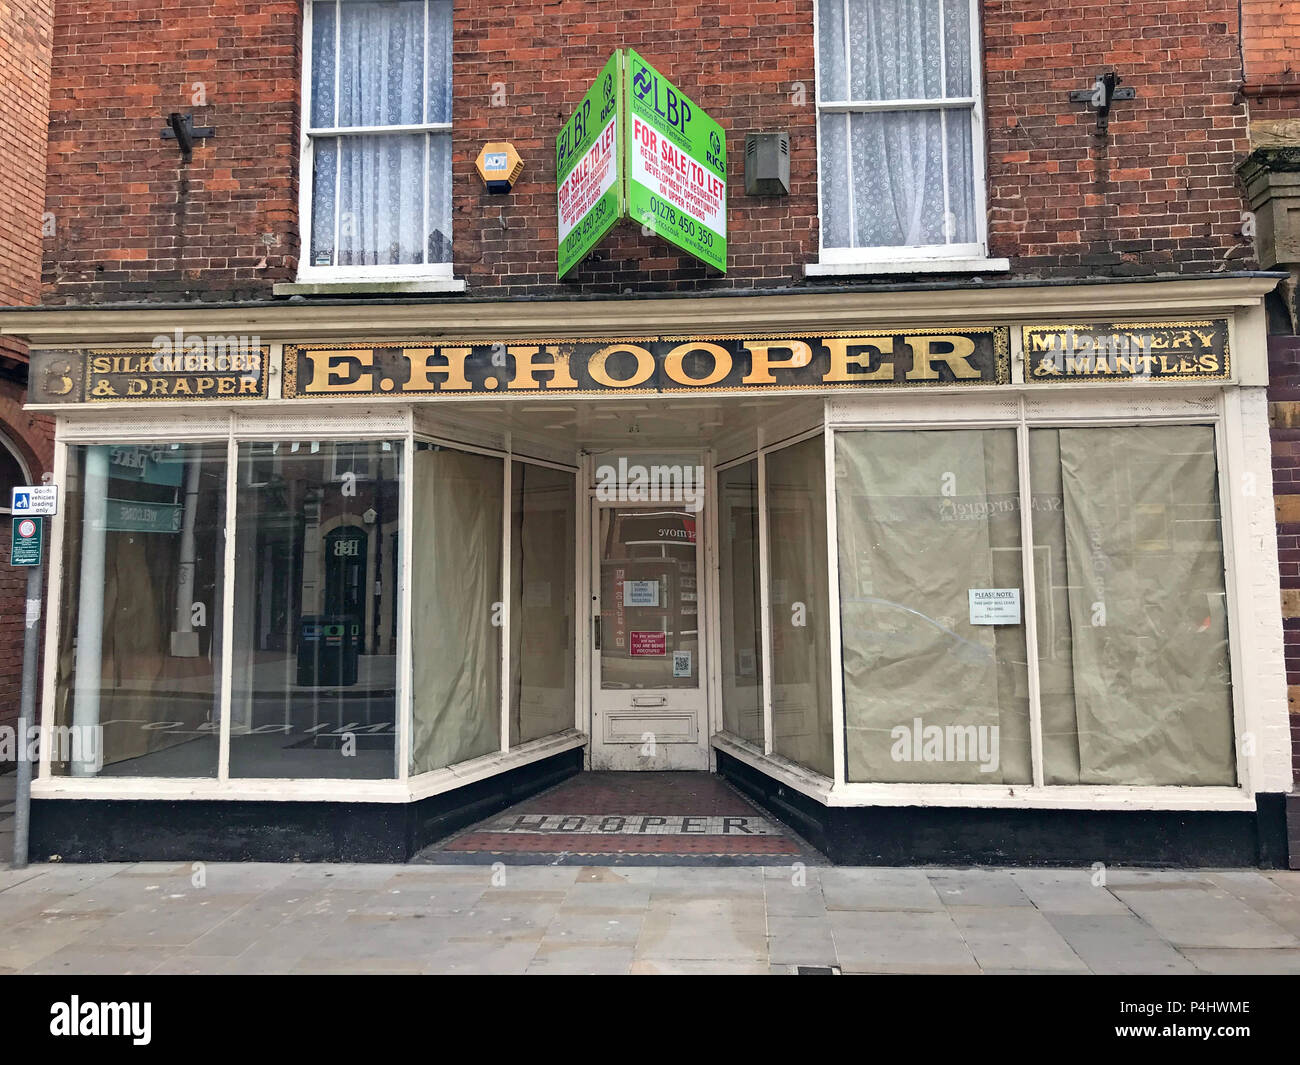 GoTonySmith,@HotpixUK,shop,Listing NGR,Listing,NGR,TA6,historic,history,Millinaery & Mantles shop sign in gold lettering,25 High Street,Bridgwater,Somerset,England,UK,TA6 3BE,South West England,Silk Mercer,Silk Merchant,Draper,Millinery,Mantles,old shop,old shops,late C19 shop,C19 shop,19th Century,store,black and gold mirrored glass fascia with gold ornamental borders,mirrored glass fascia,gold ornamental borders,Silk Mercer and Draper. E.H.Hooper. Millinery and Mantles.,ceramic tiles,entrance,Hooper,For sale,To let,sign